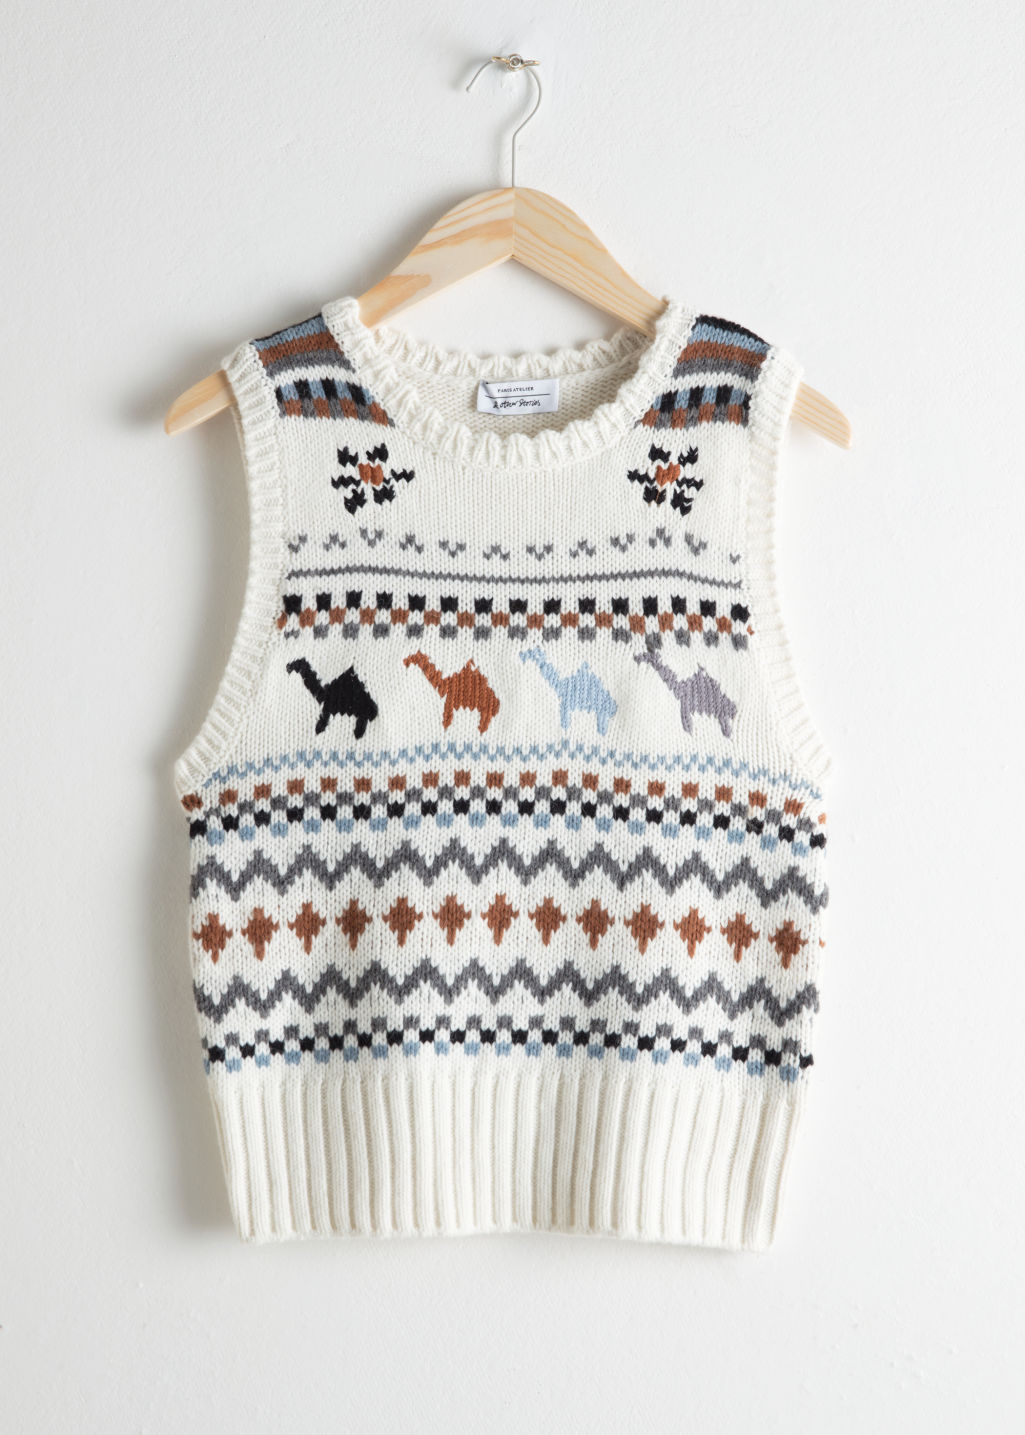 Camel Knit Vest - Camel Pattern - Knitwear - & Other Stories